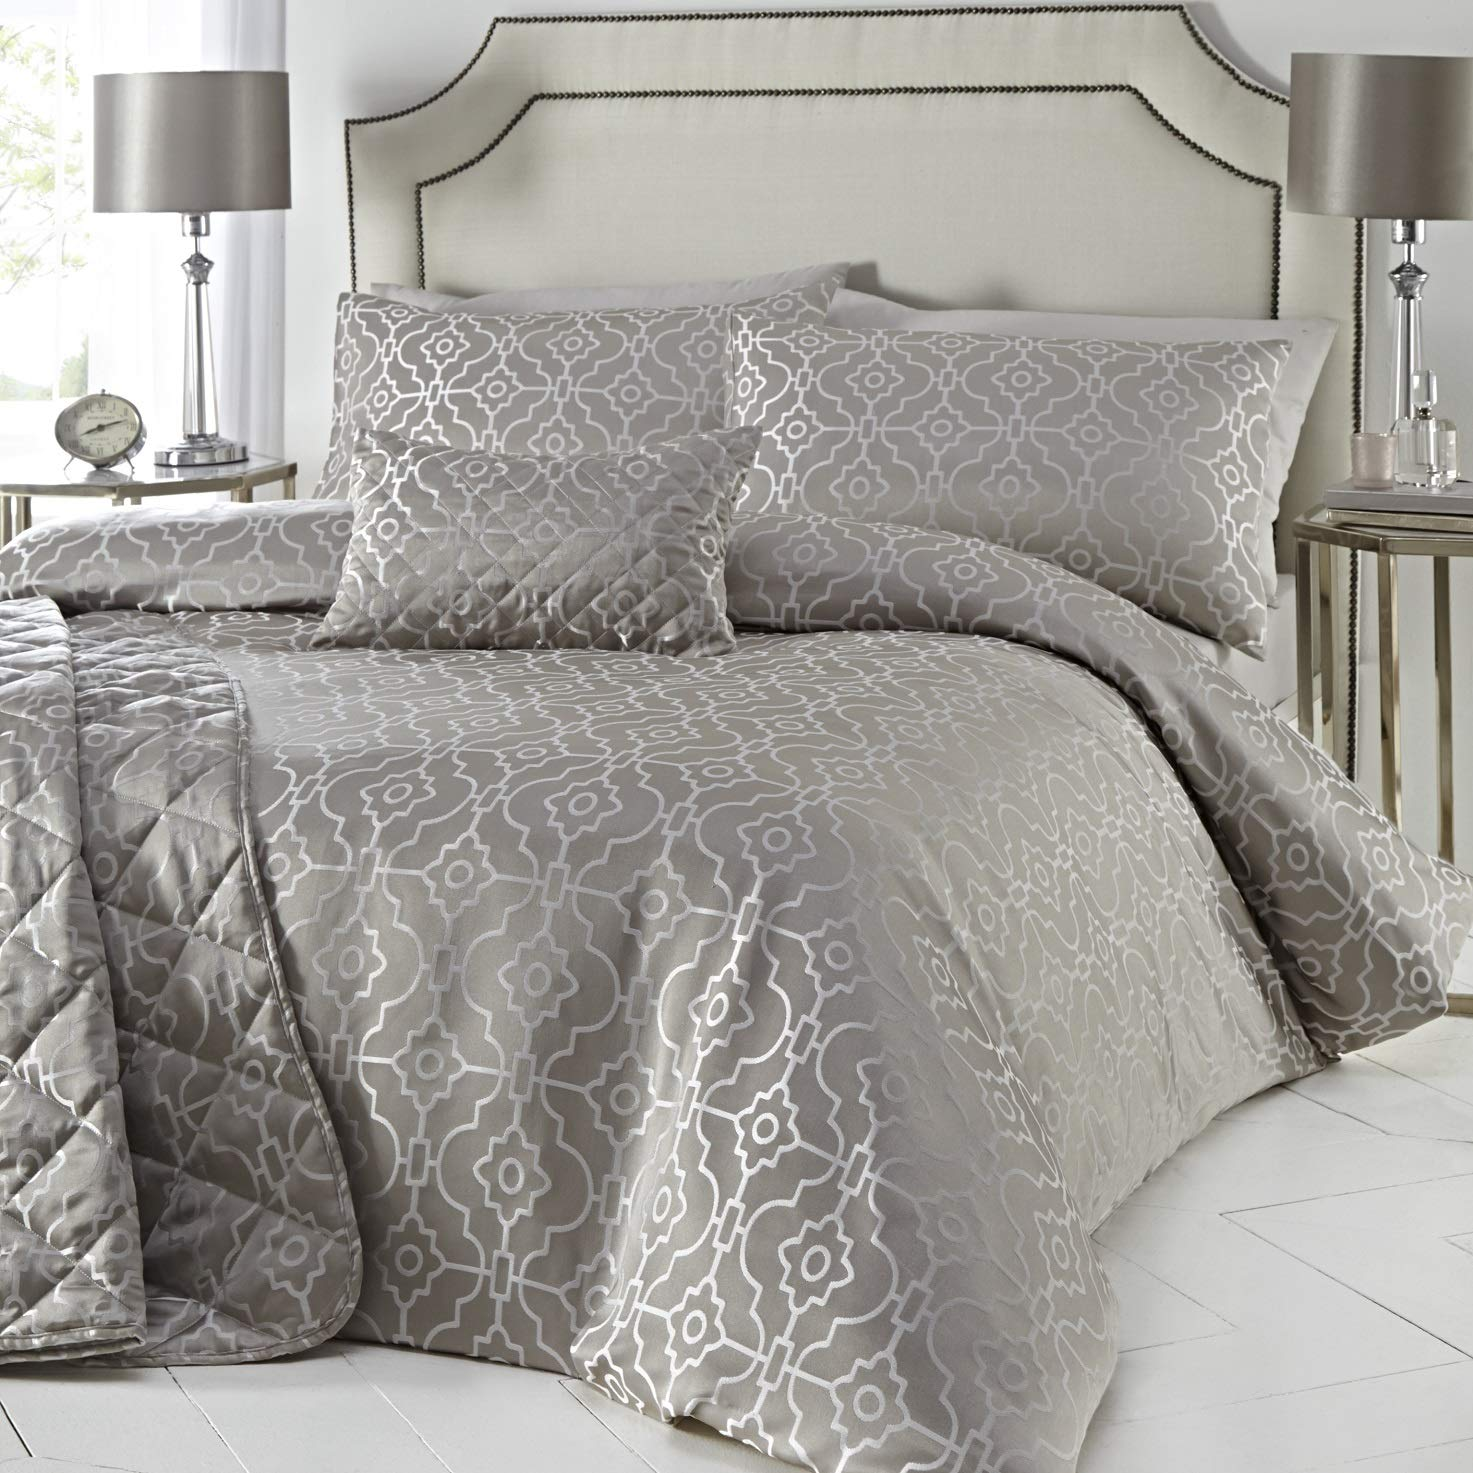 FITTED SHEET SILVER SATIN SINGLE DUVET COVER 2 x PILLOWCASES SET NEW